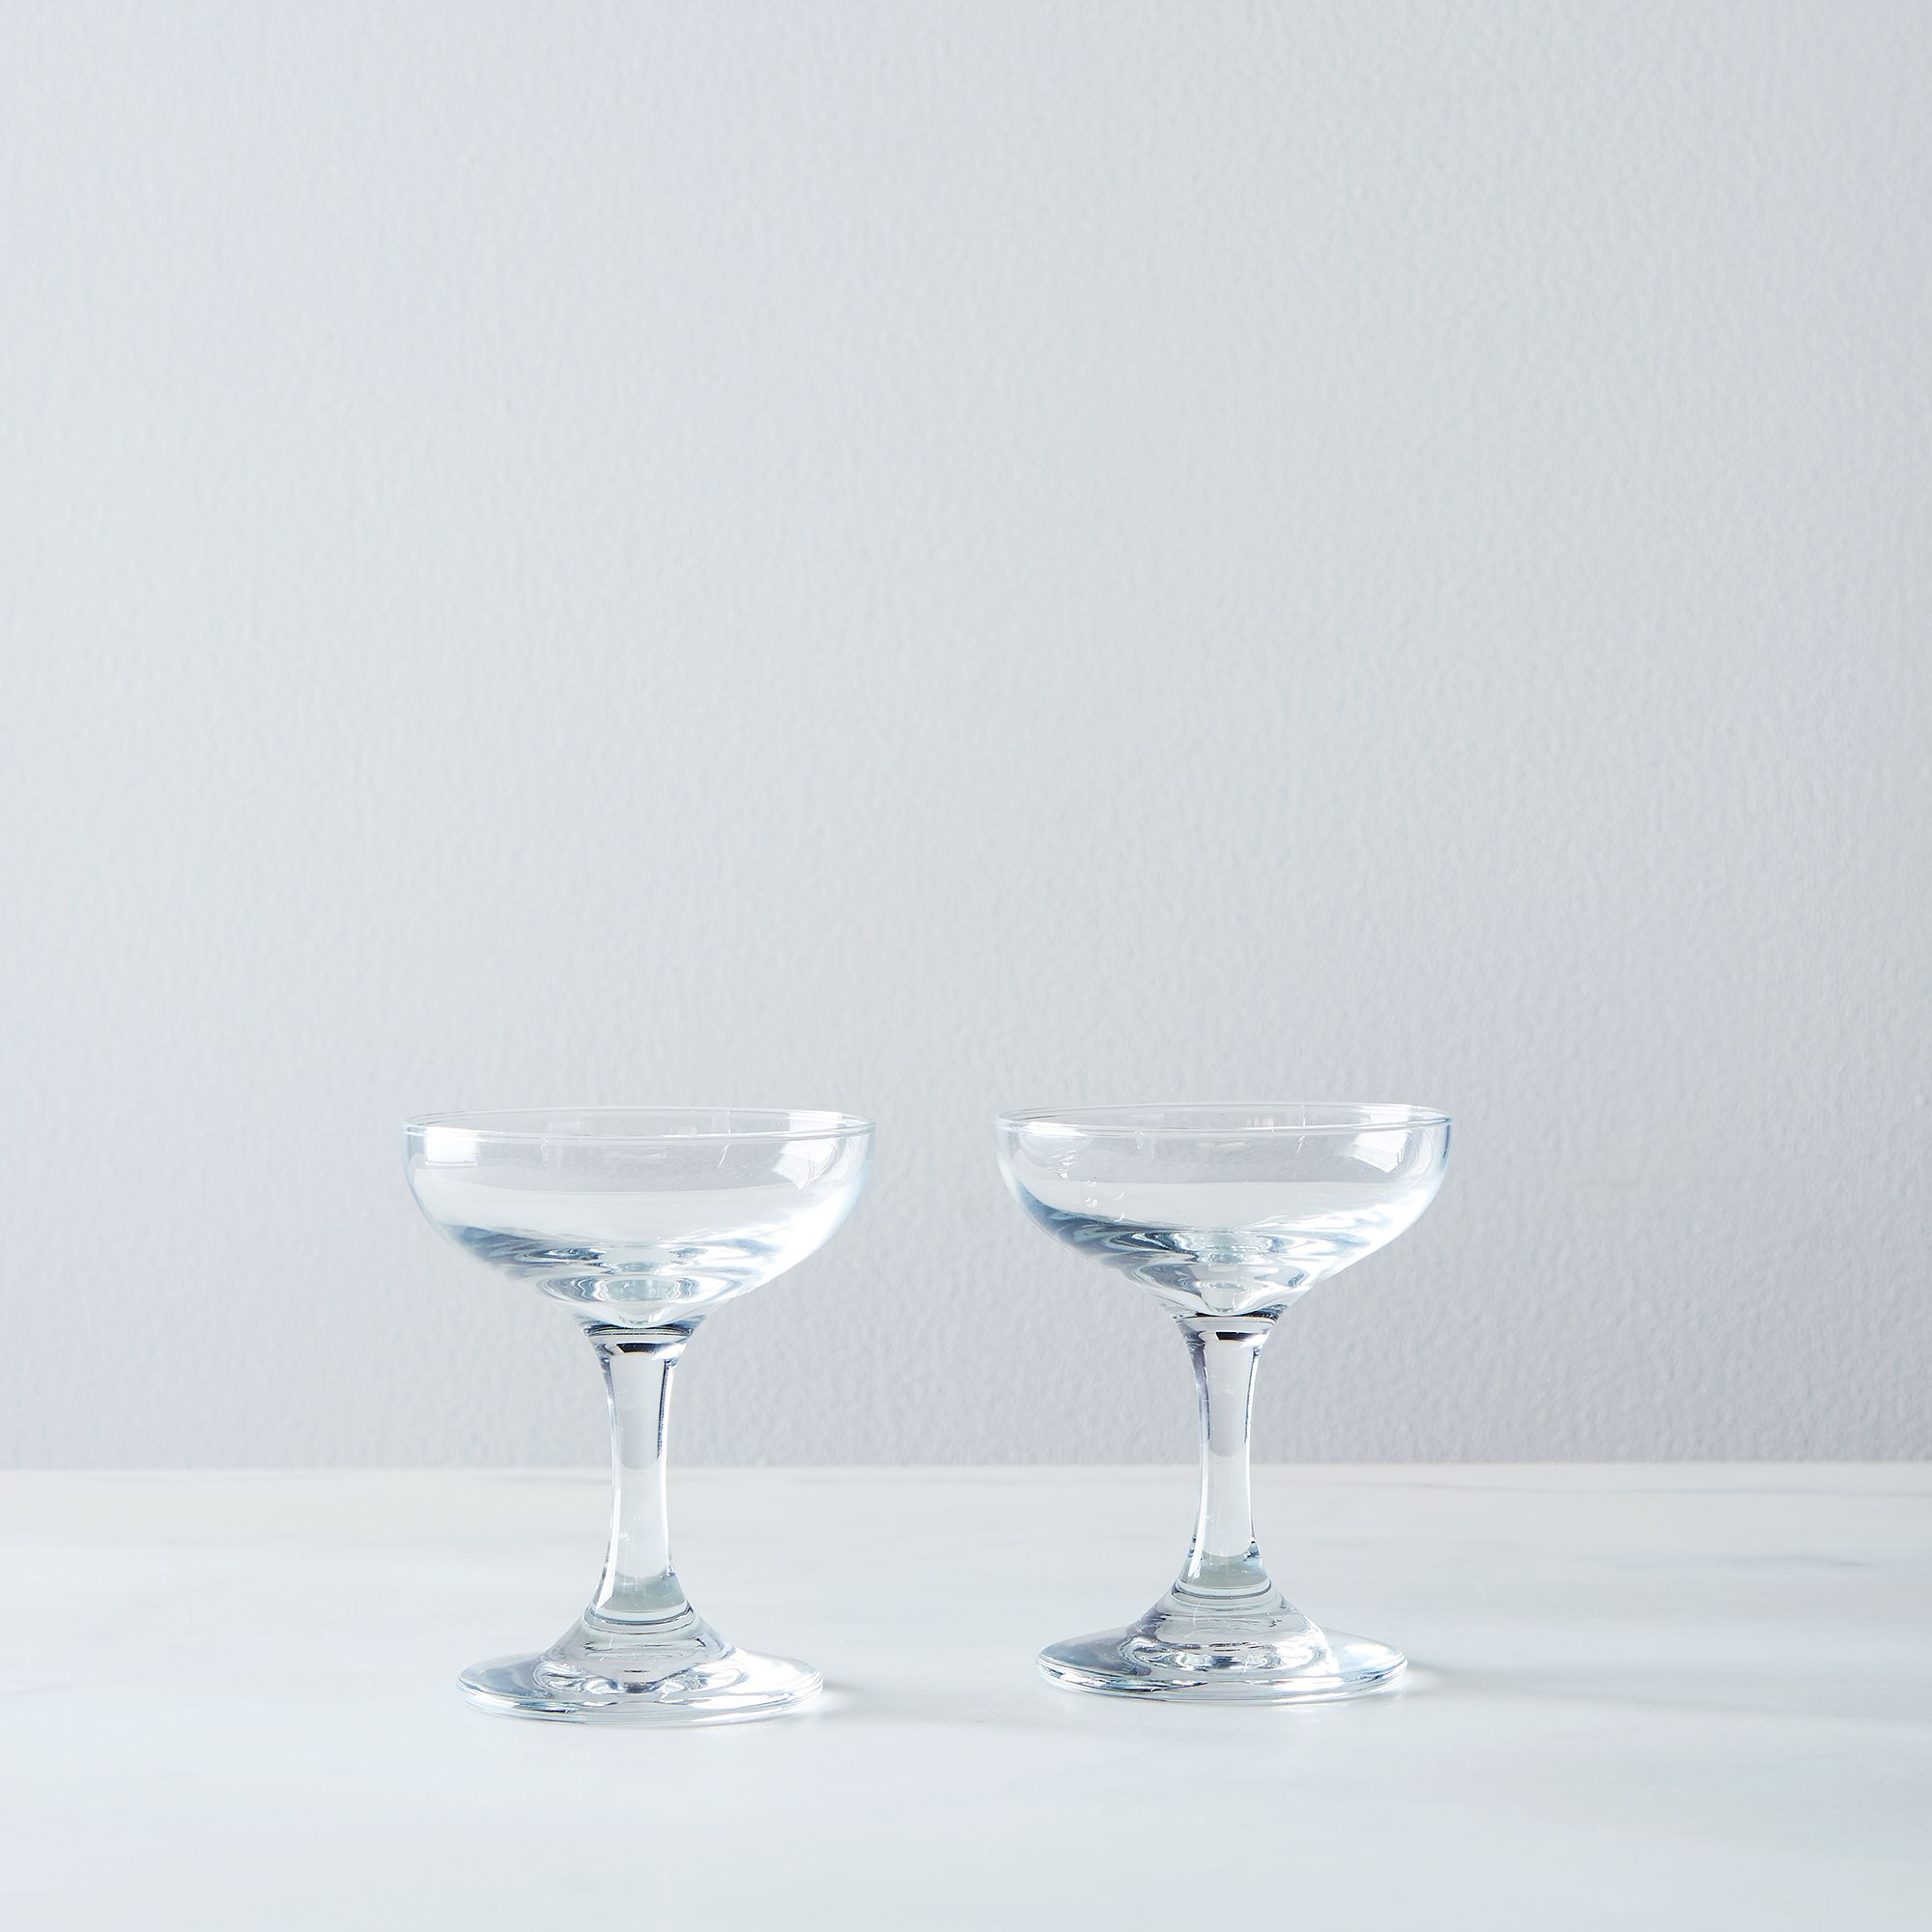 Ba1a5a72 def9 4711 a0ce b4b35cccdd7b  2015 0619 w p design cocktail and champagne coupe silo bobbi lin 3241